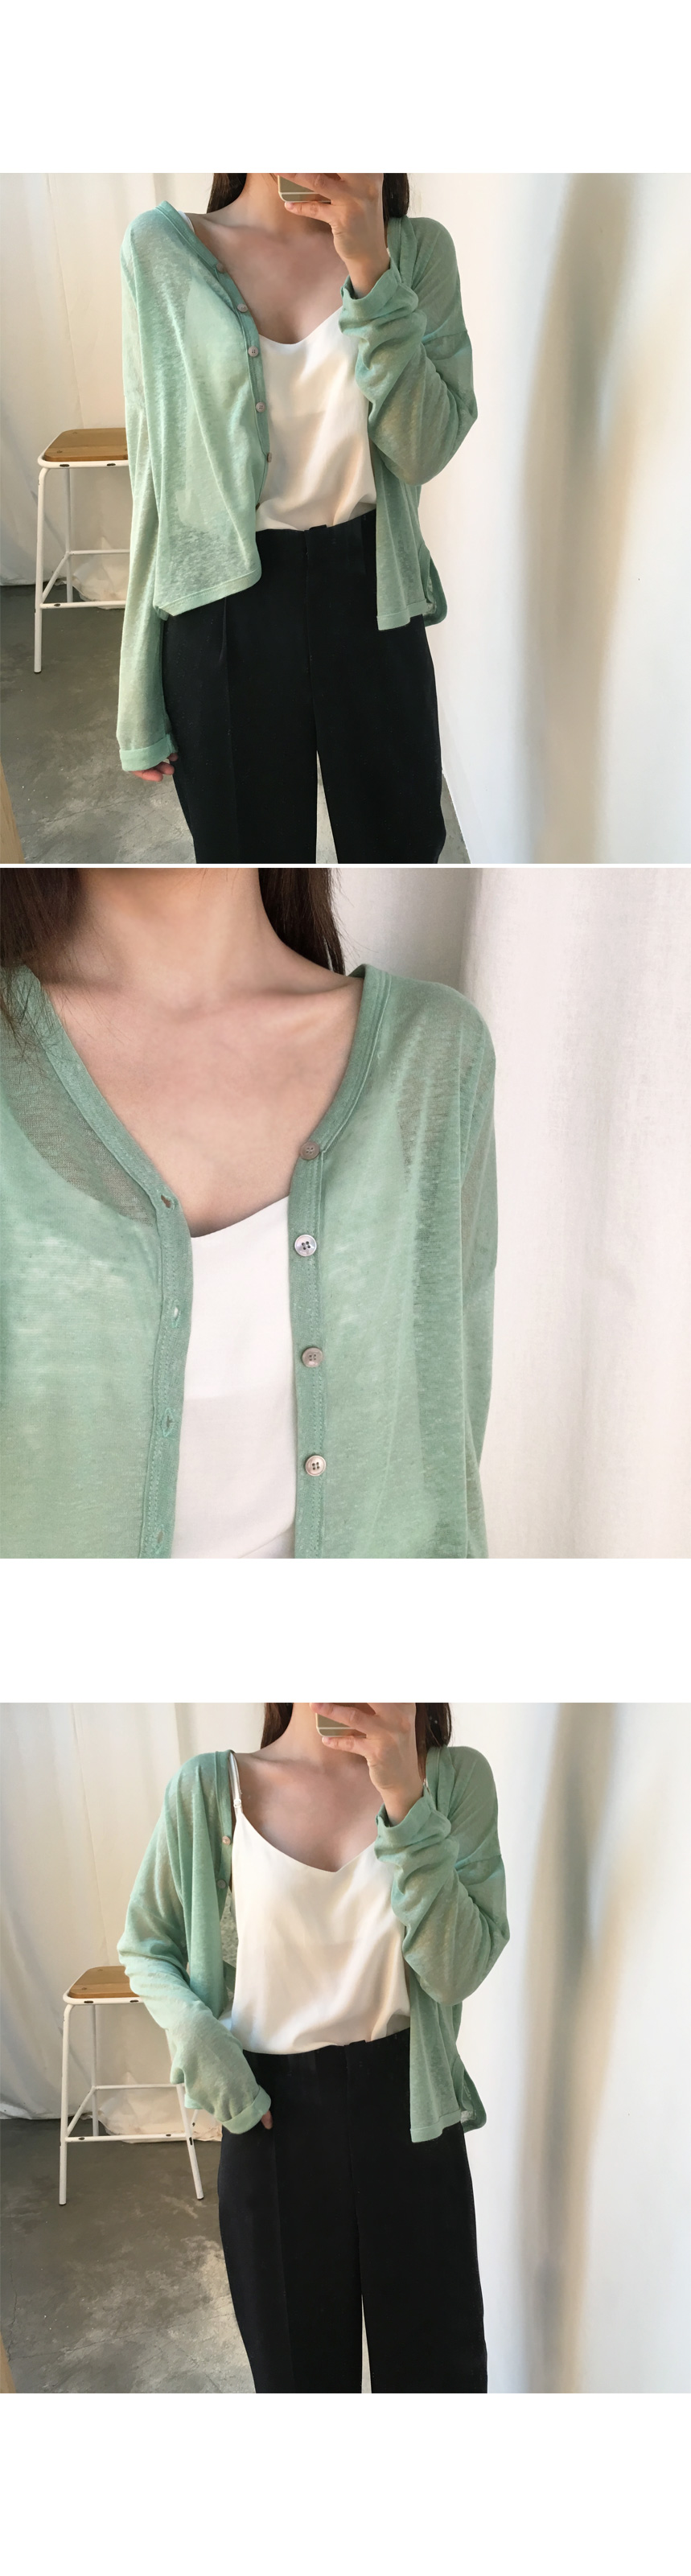 Summer V neck cardigan